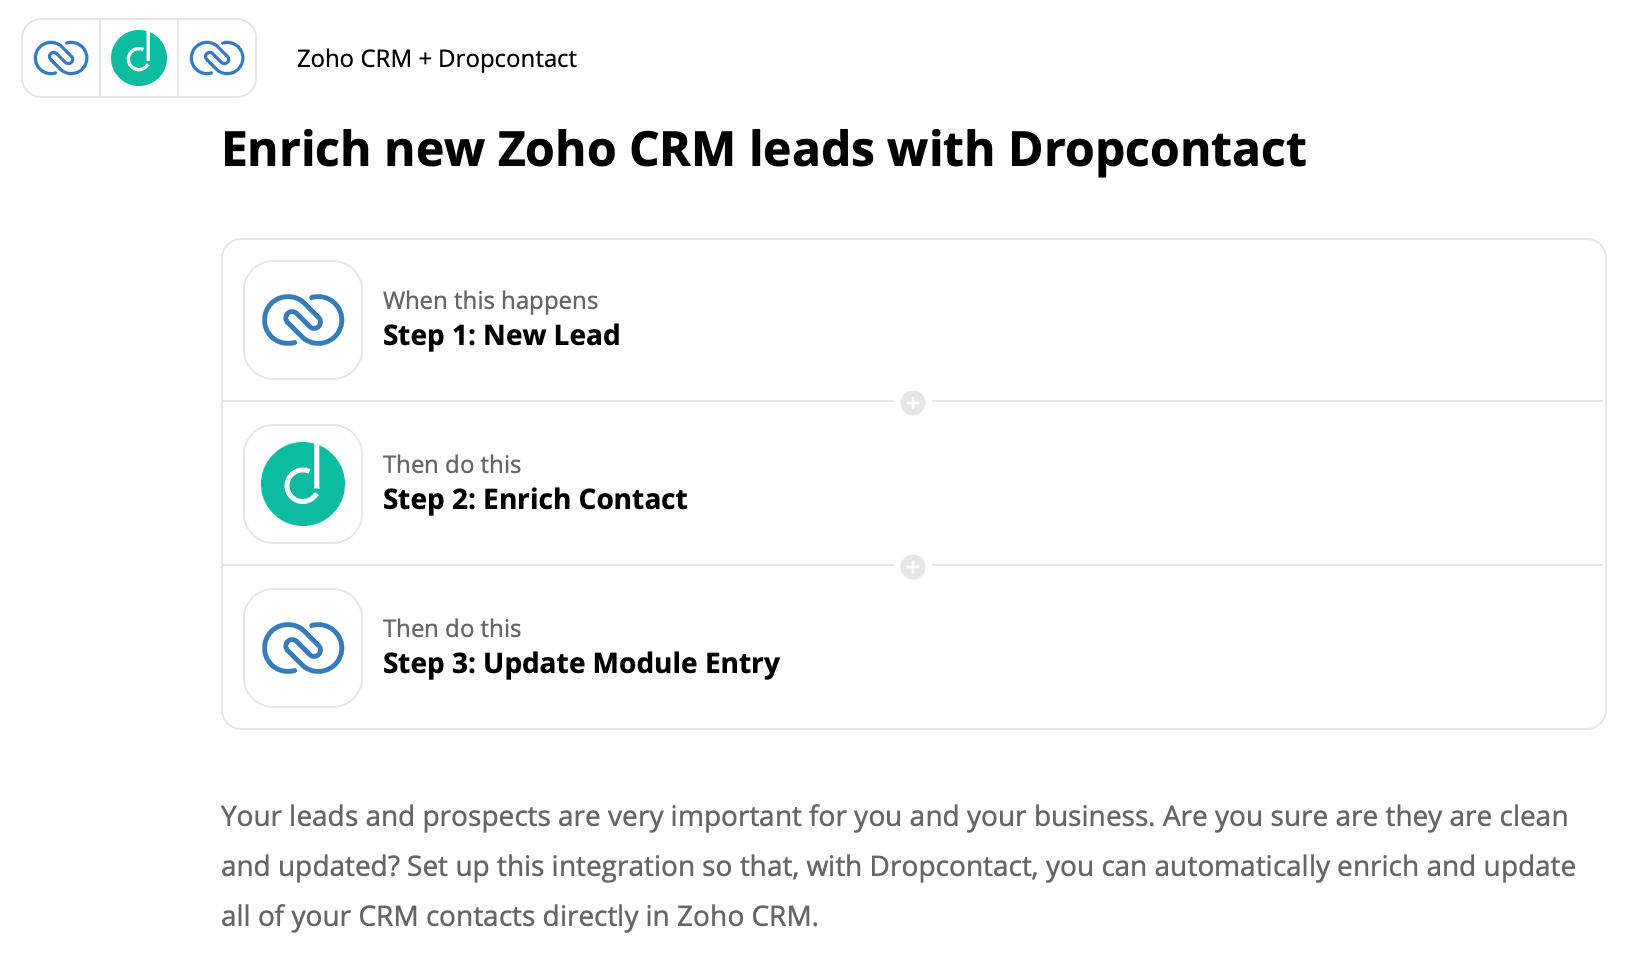 Integrate Dropcontact with Zoho CRM to enrich all new leads